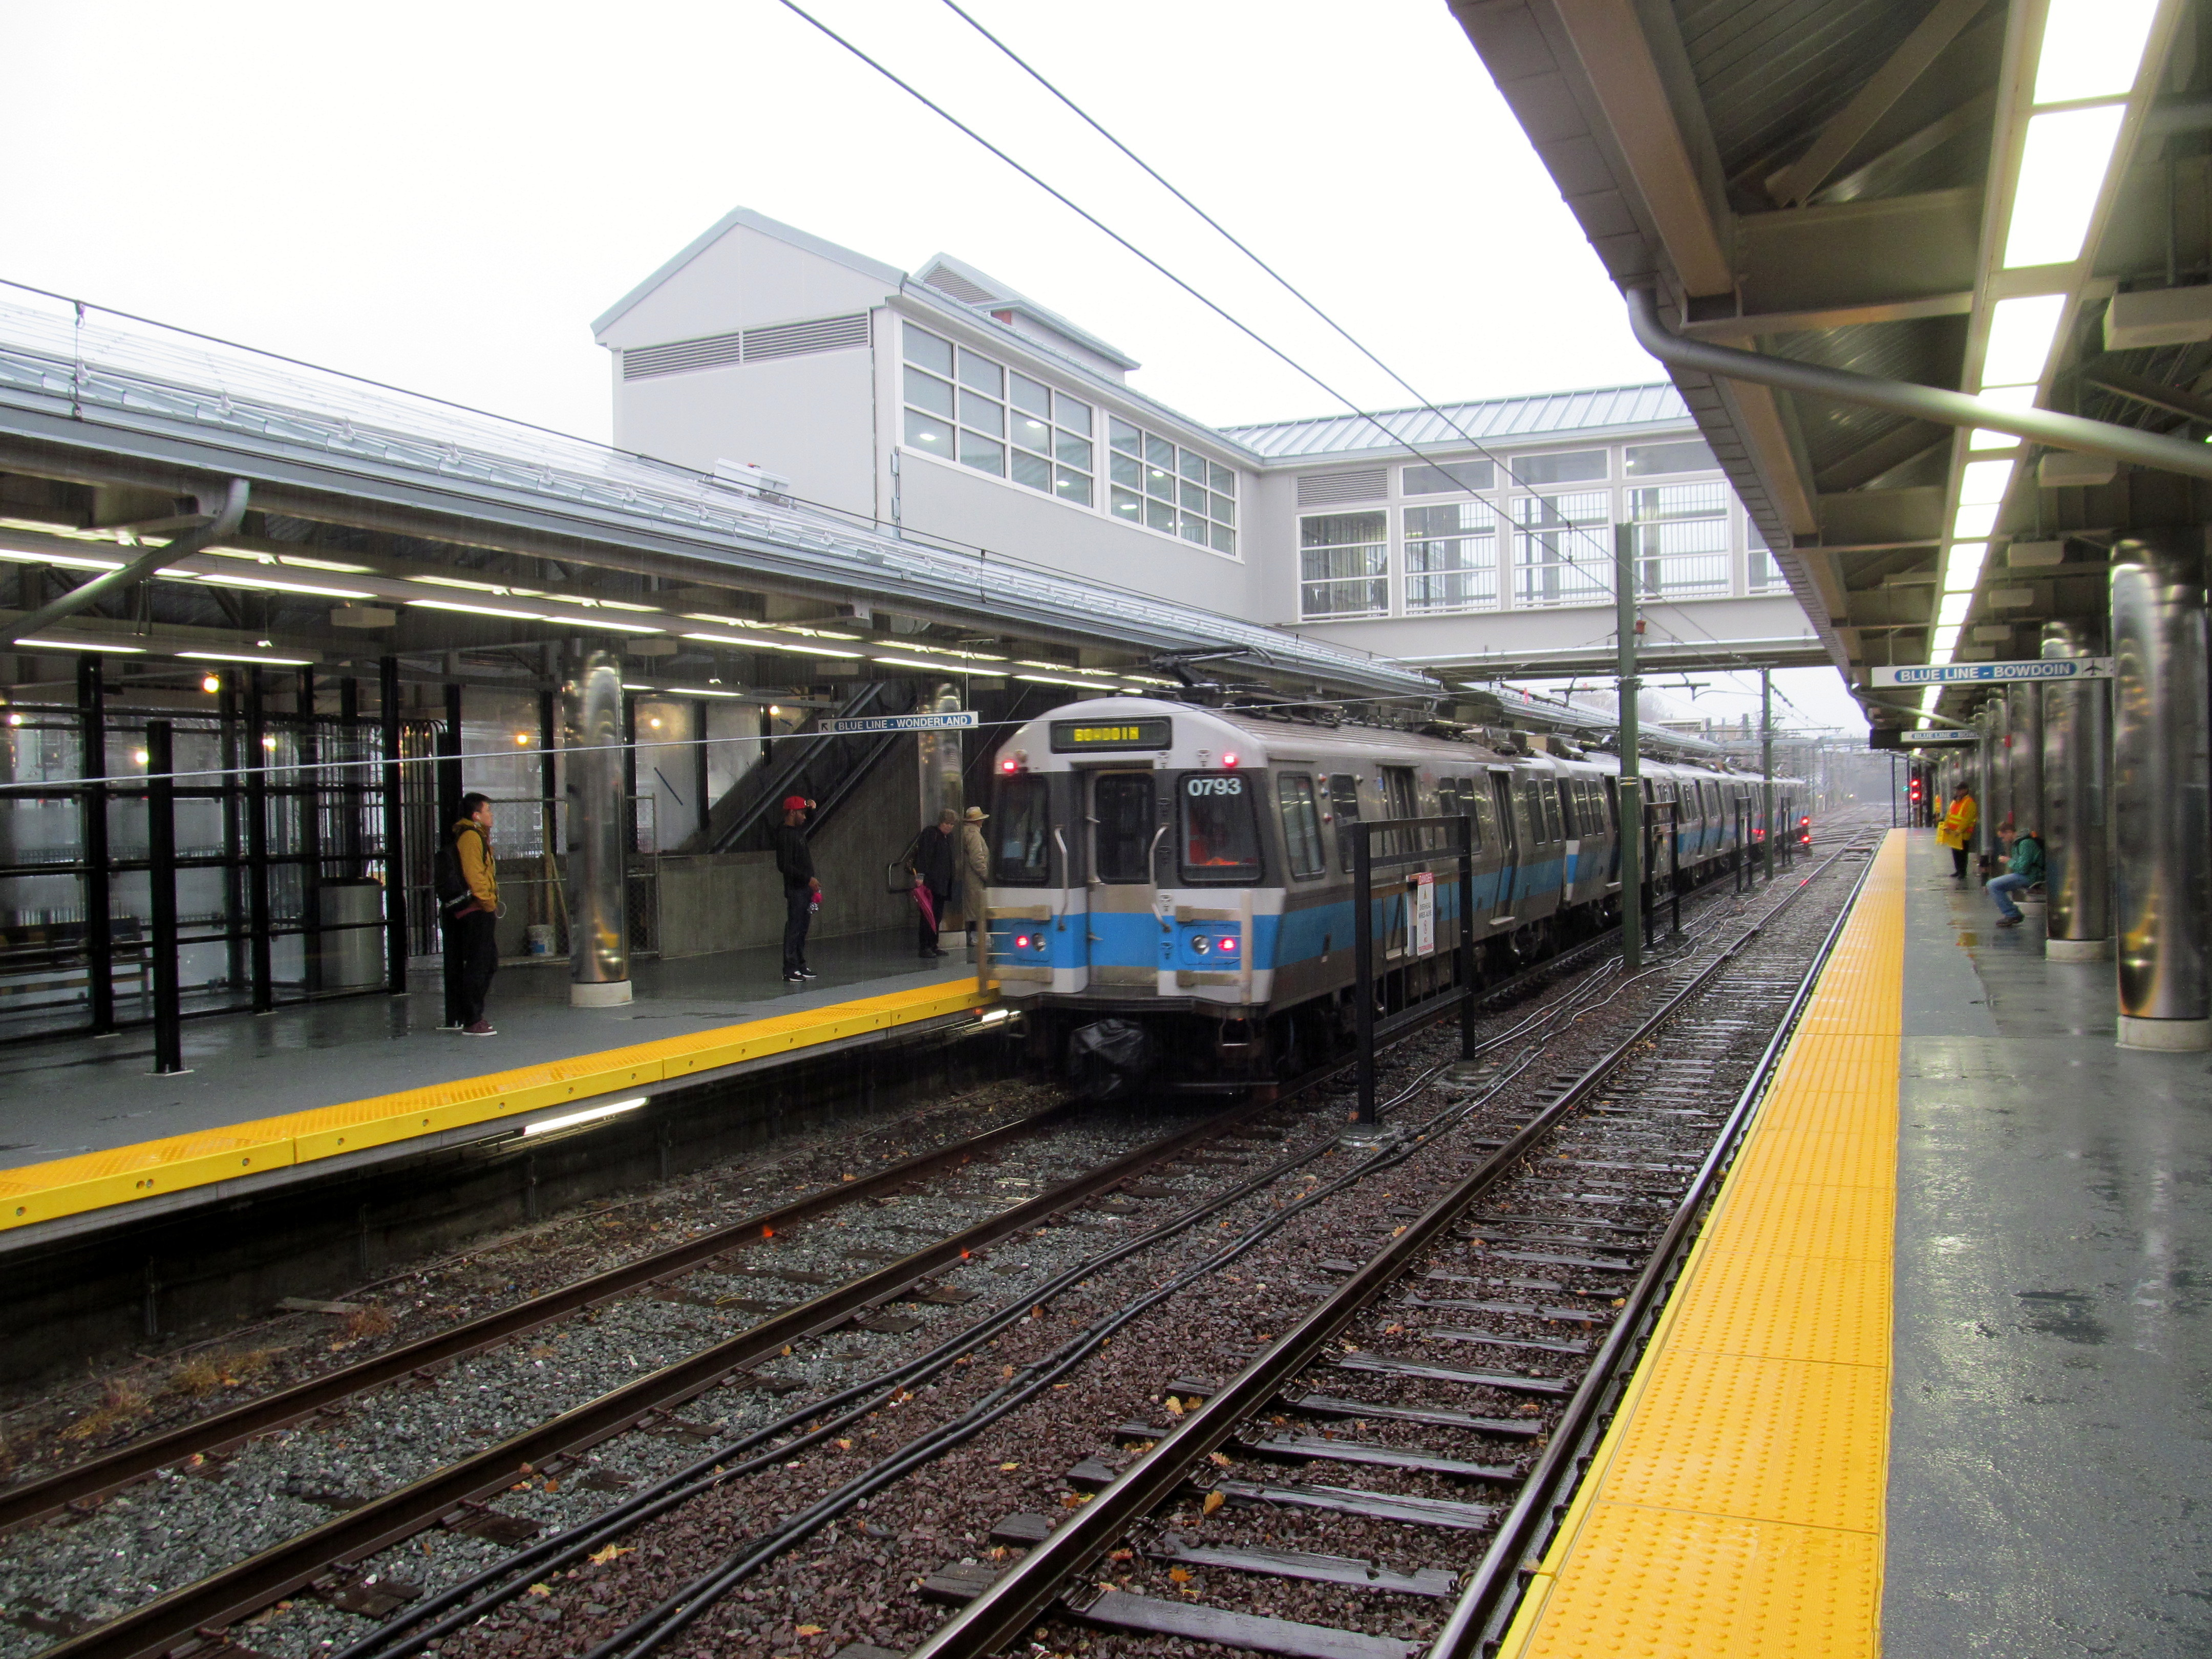 An inbound Blue Line train arriving at Orients Heights Station in Boston. Image by user Pi.1415926535, licensed by CC BY-SA 3.0.